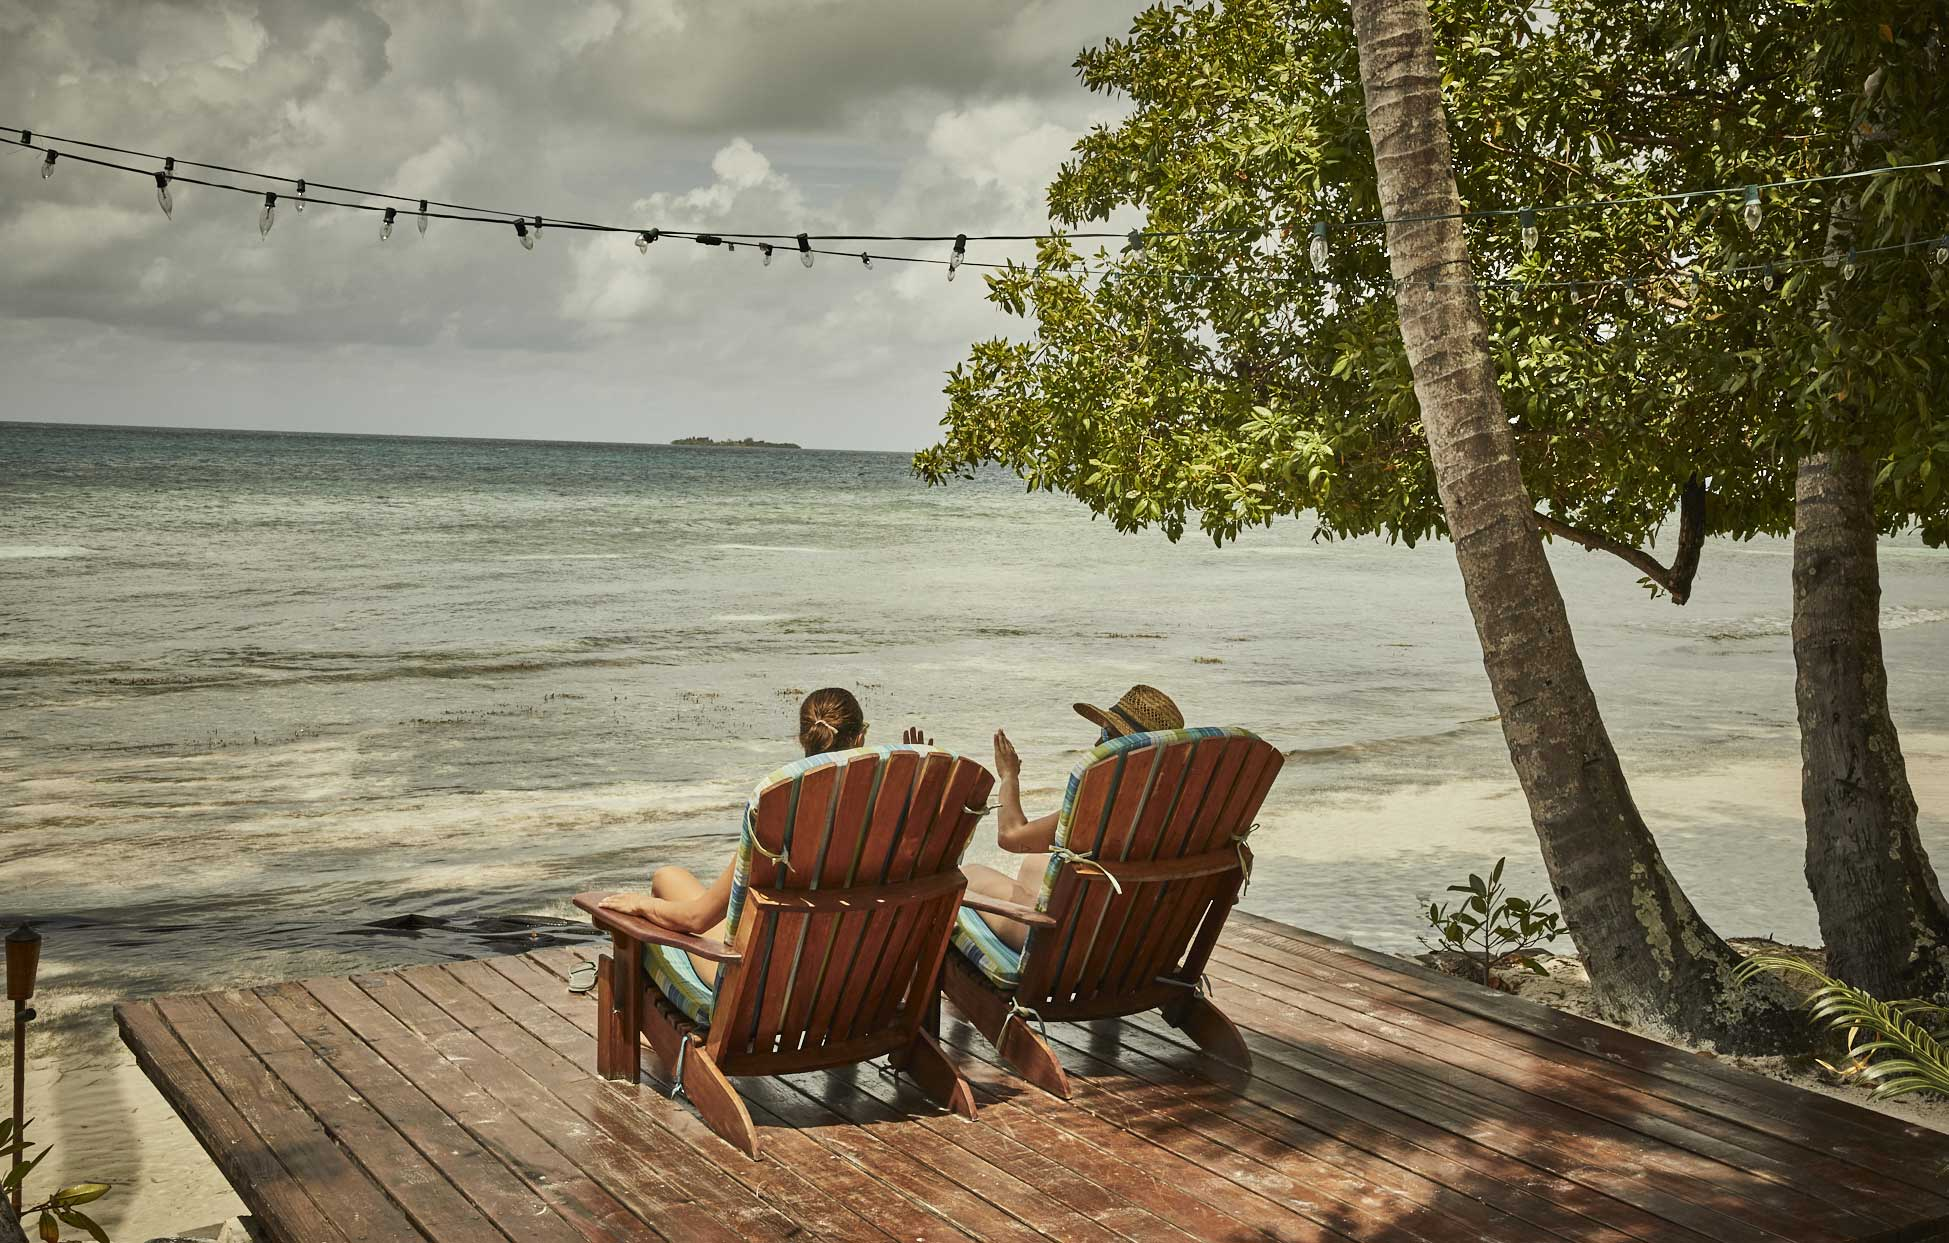 BELIZE_HATCHET_Girls-Chairs_001